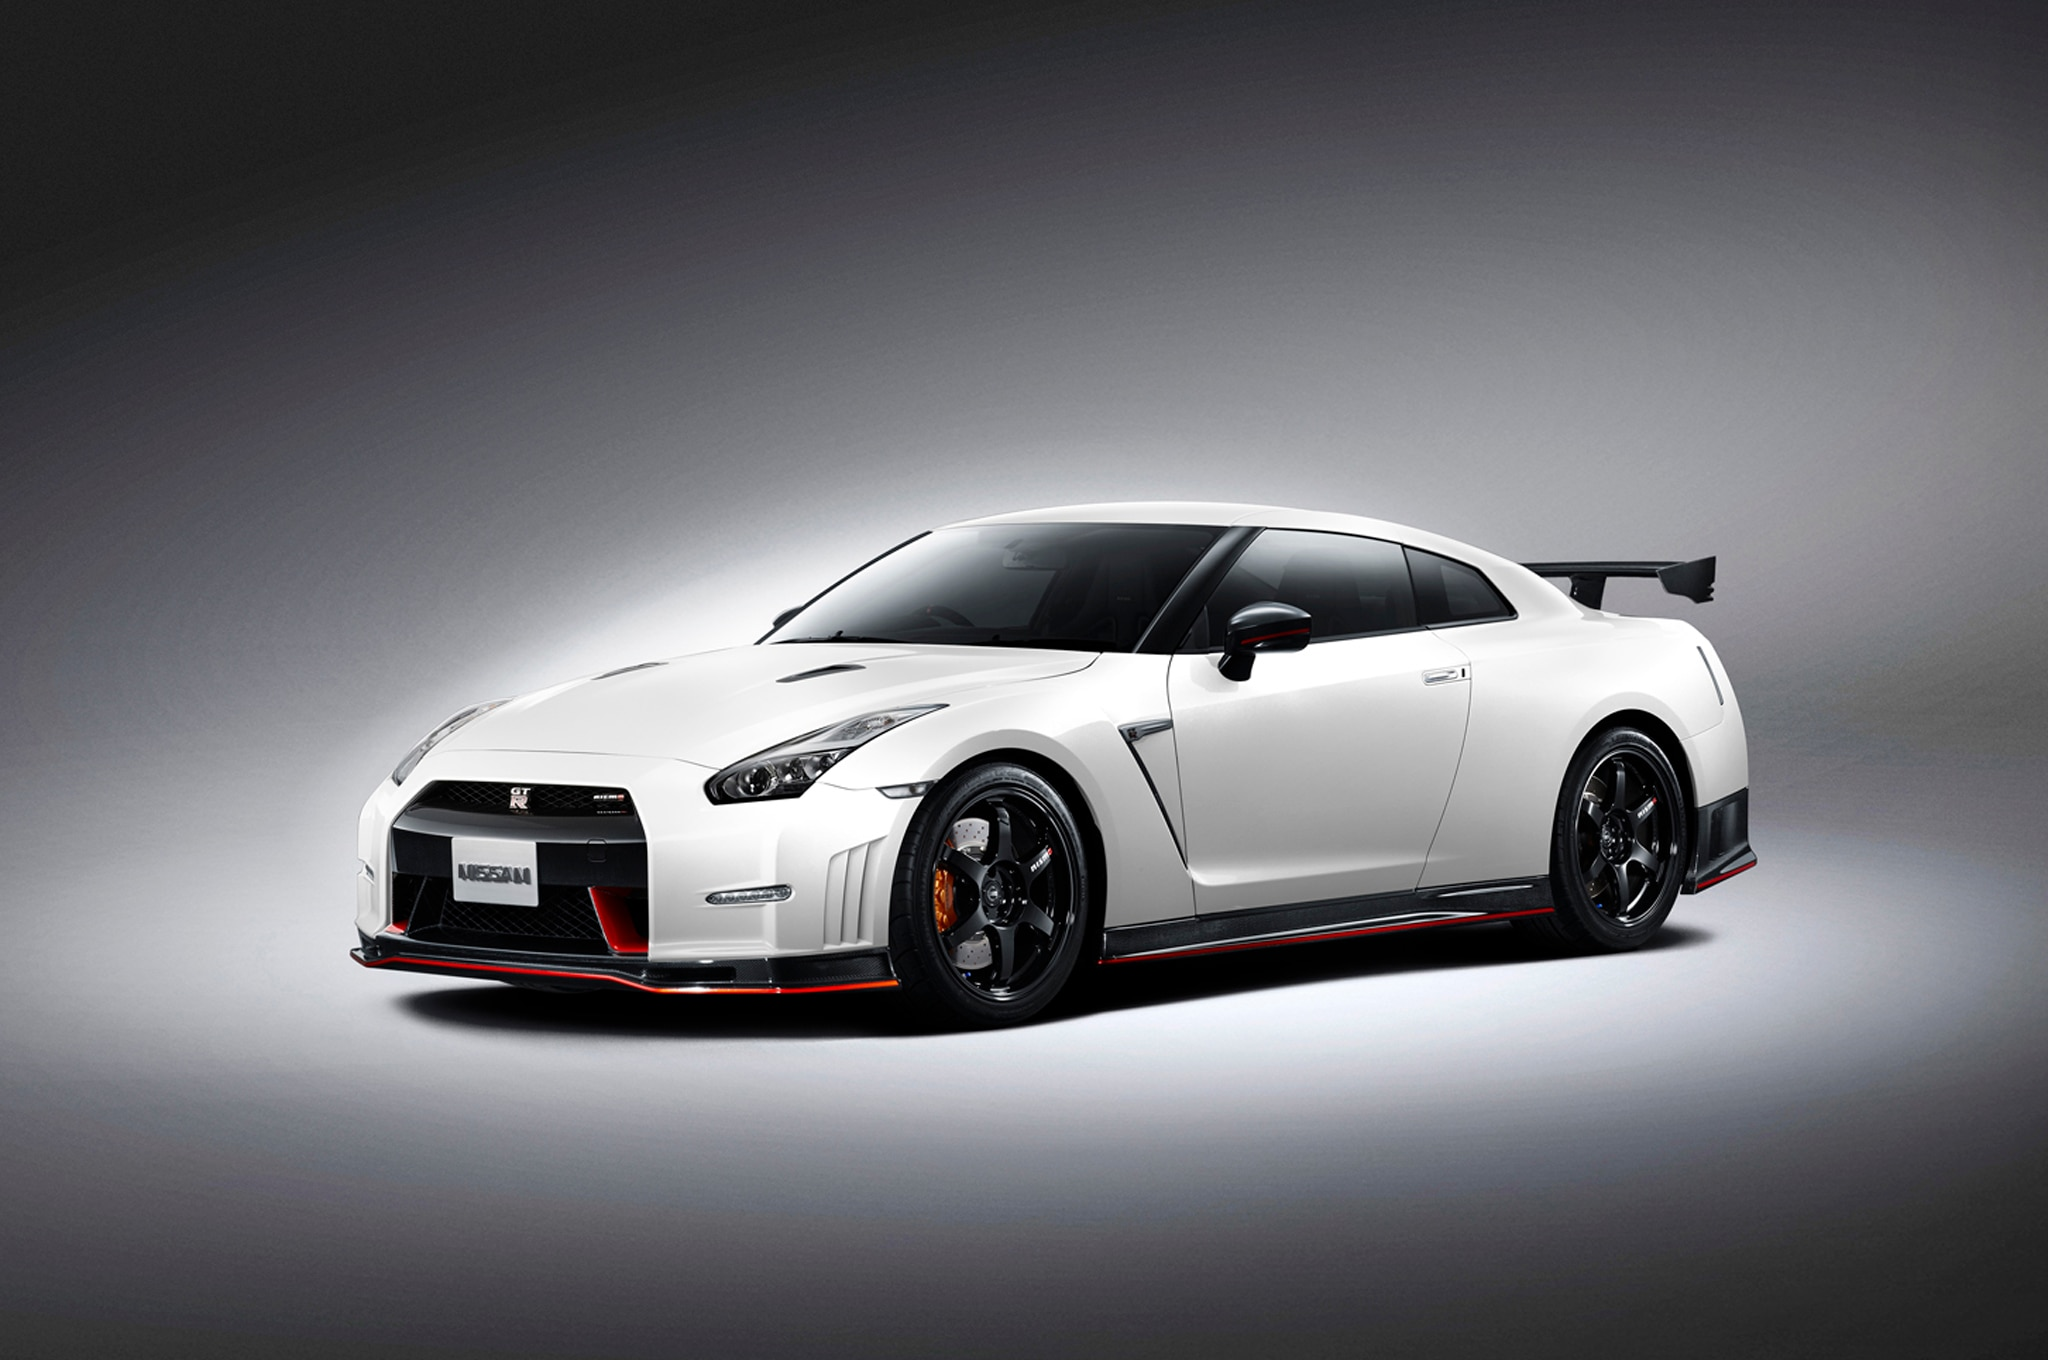 2015 Nissan Gt R Nismo Details Released Before 2013 Tokyo Show Almera Black Front Three Quarters